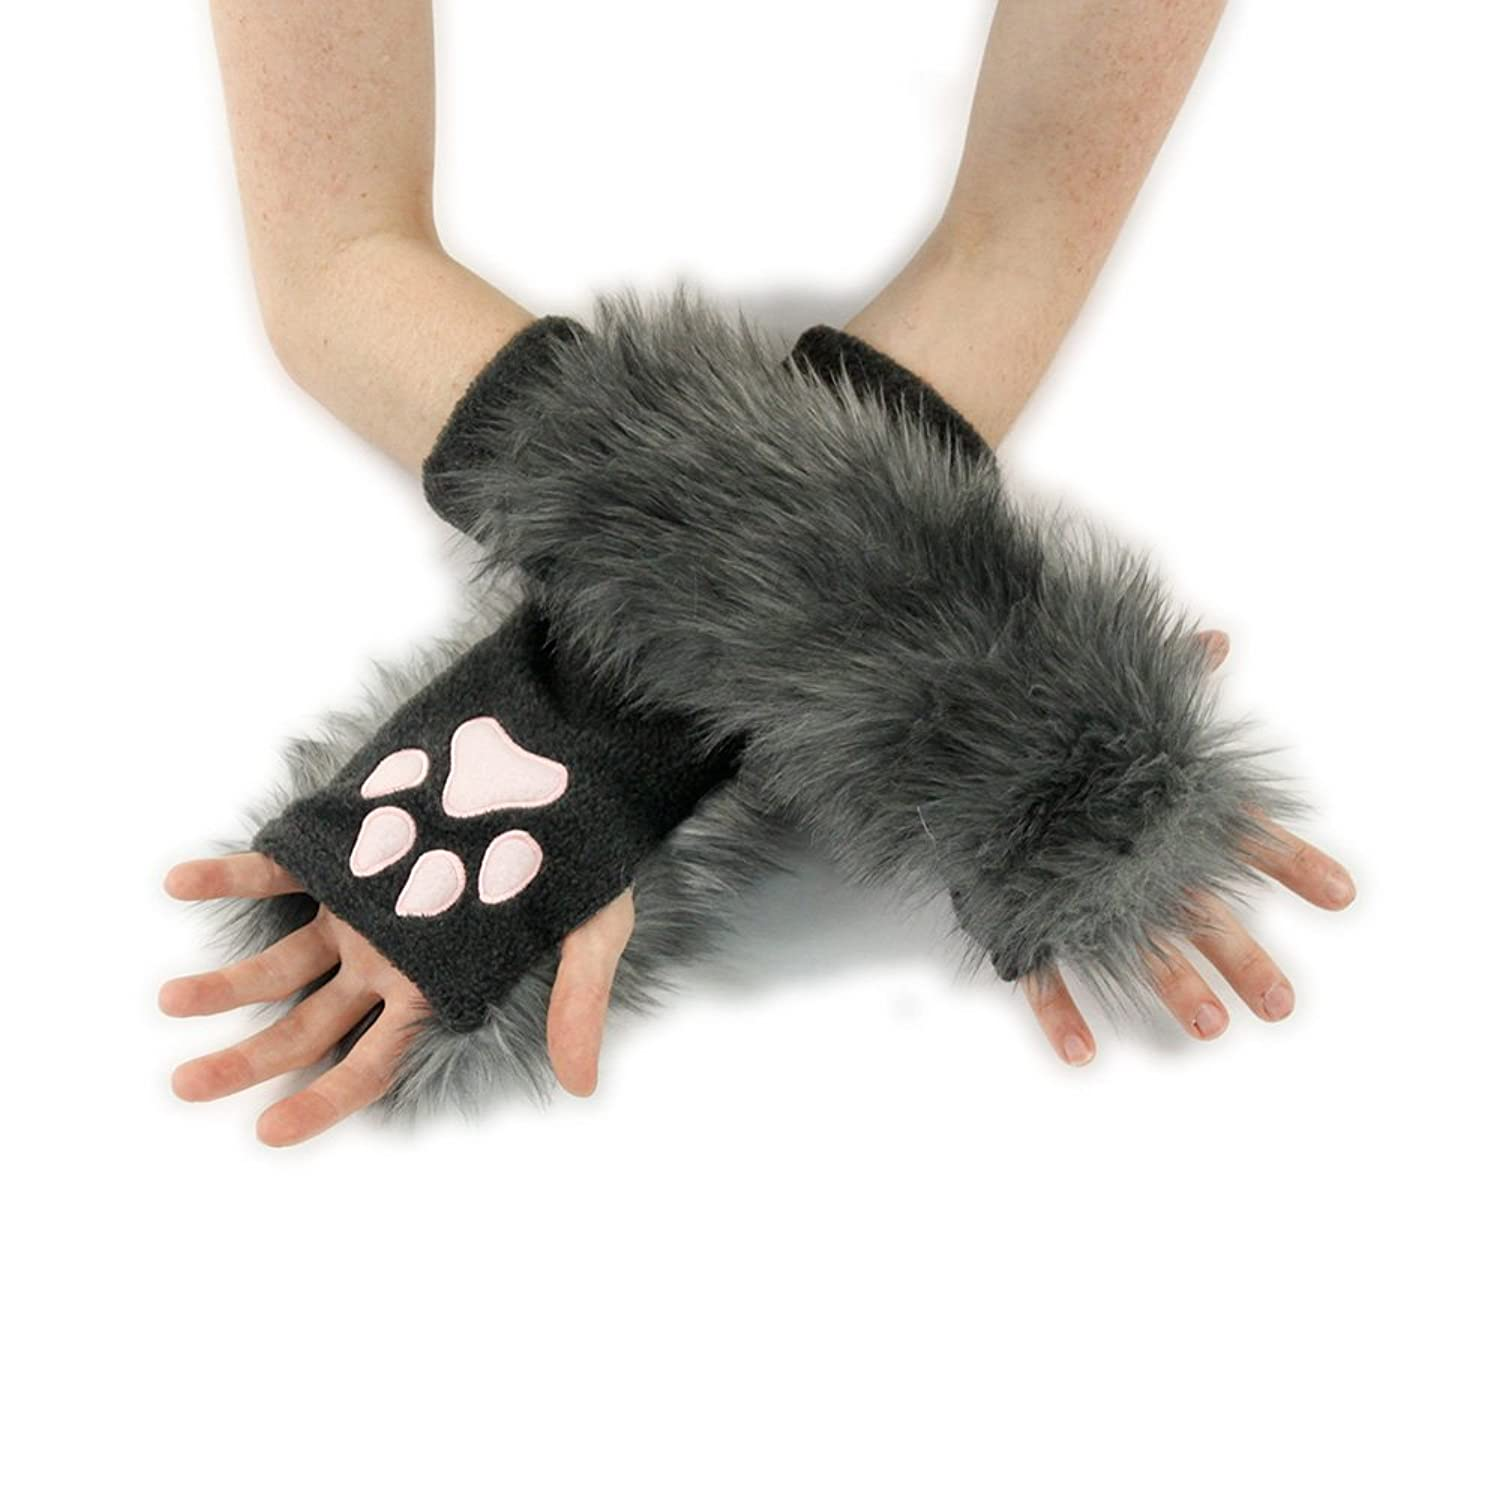 Pawstar Gray Fingerless Glove Paws - DeluxeAdultCostumes.com